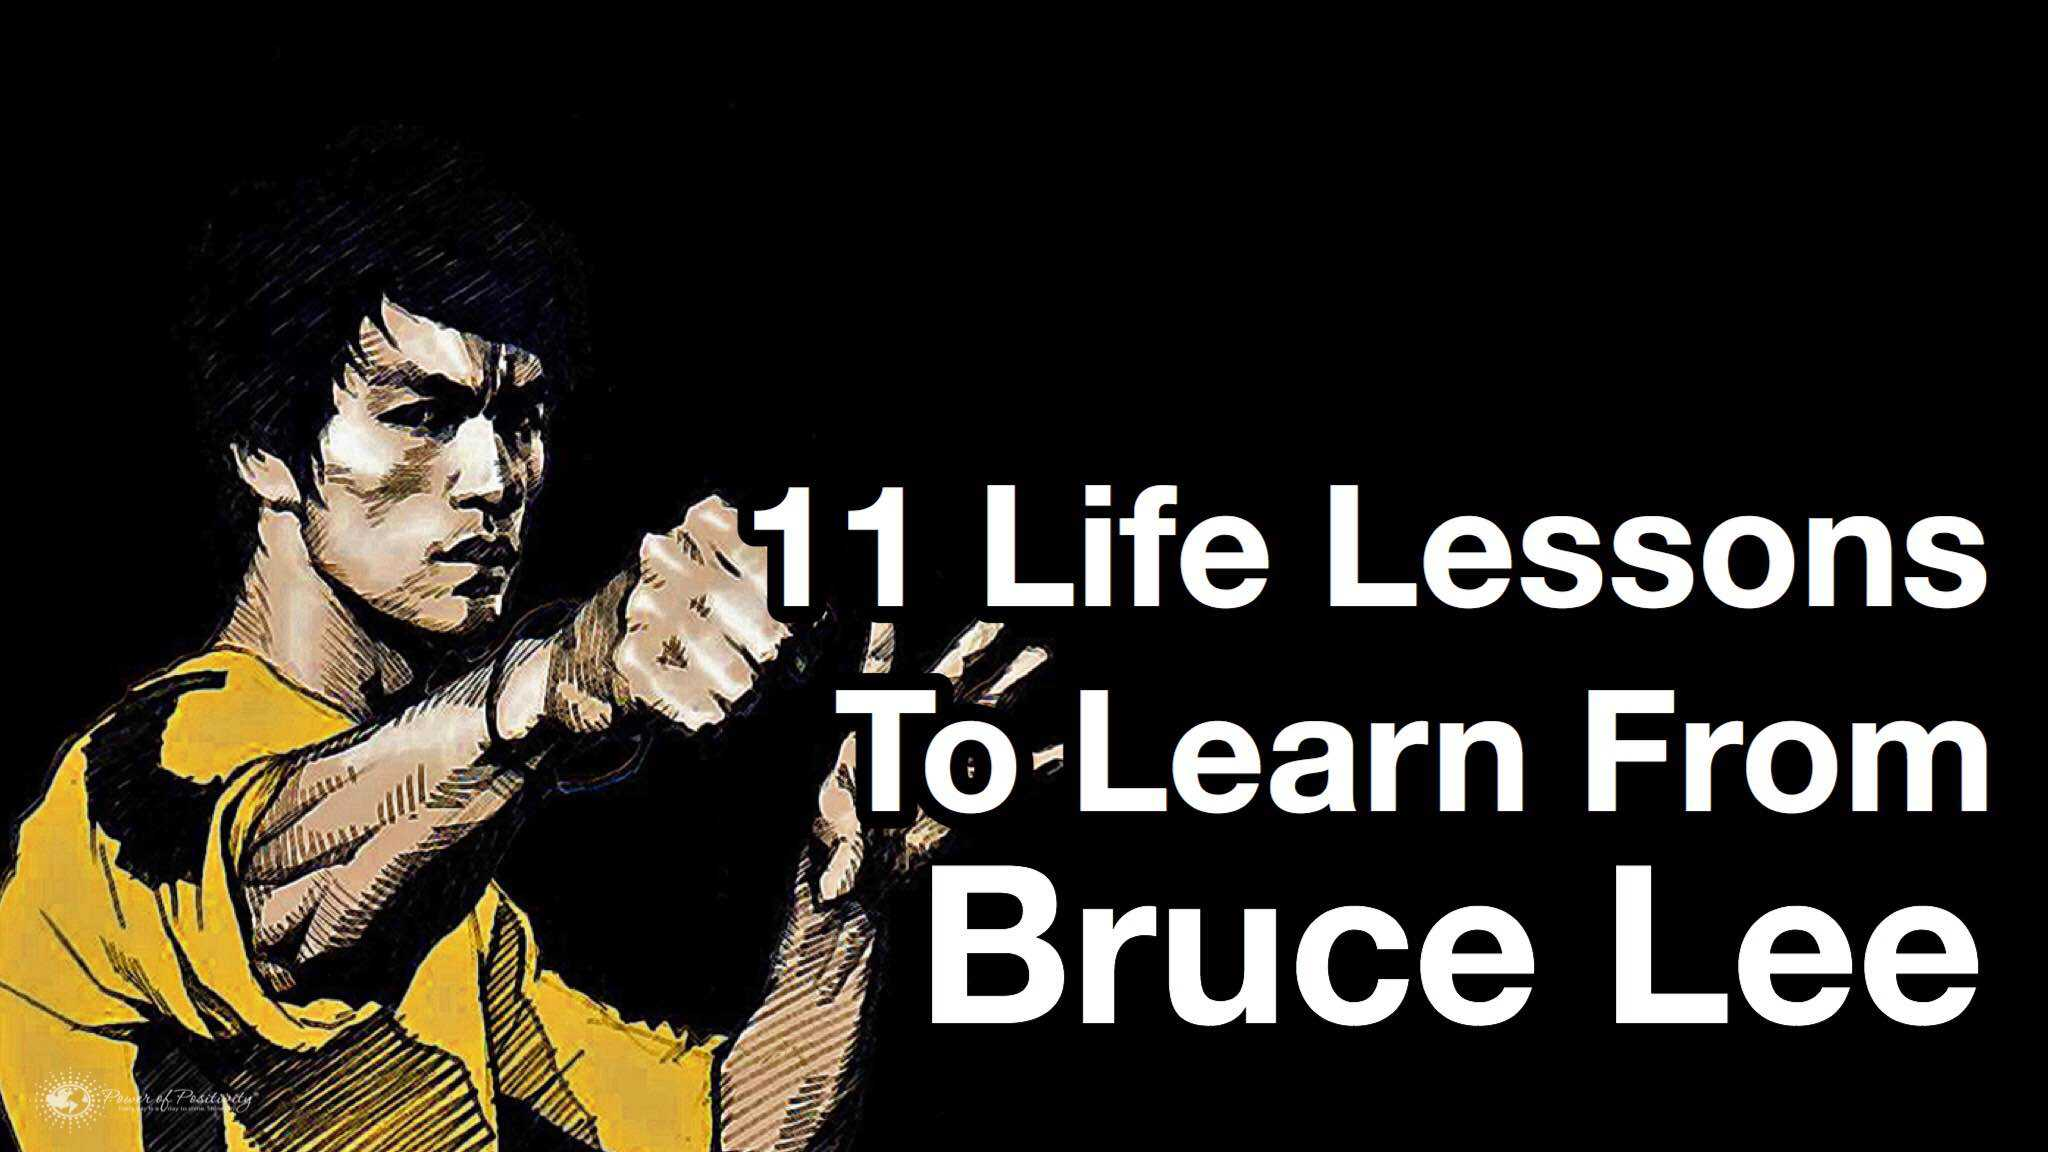 Inspirational Quotes About Life Lessons 11 Life Lessons From Bruce Lee